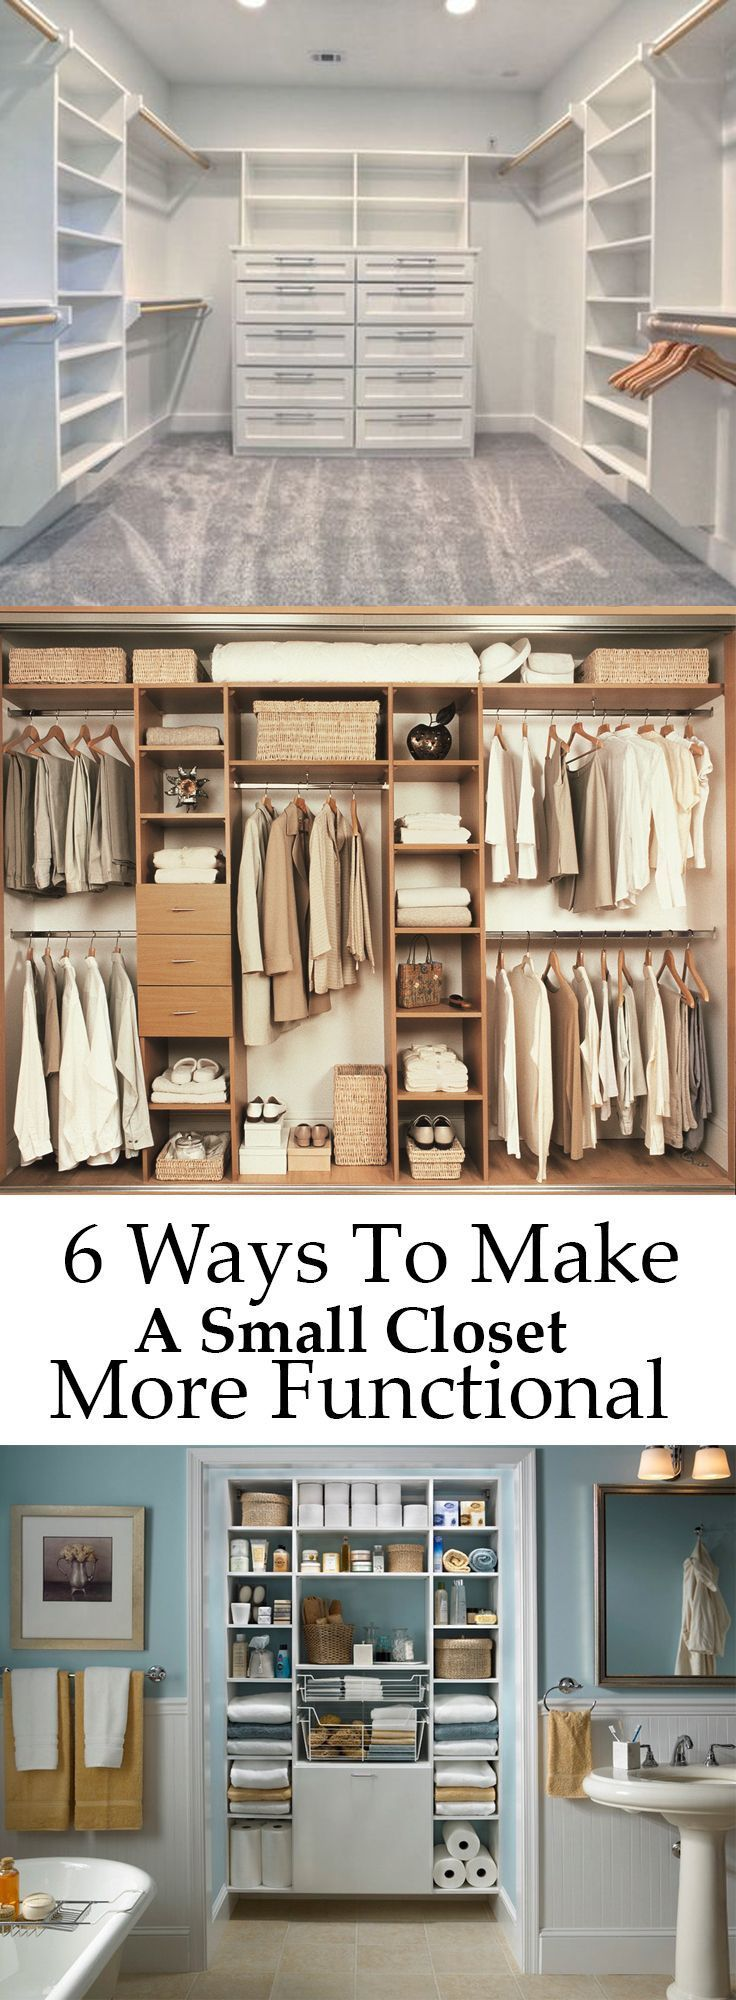 6 Ways To Make A Small Closet More Functional.Call Today Or Stop By For A  Tour Of Our Facility! Indoor Units Available! Ideal For Outdoor Gear,  Furniture, ...